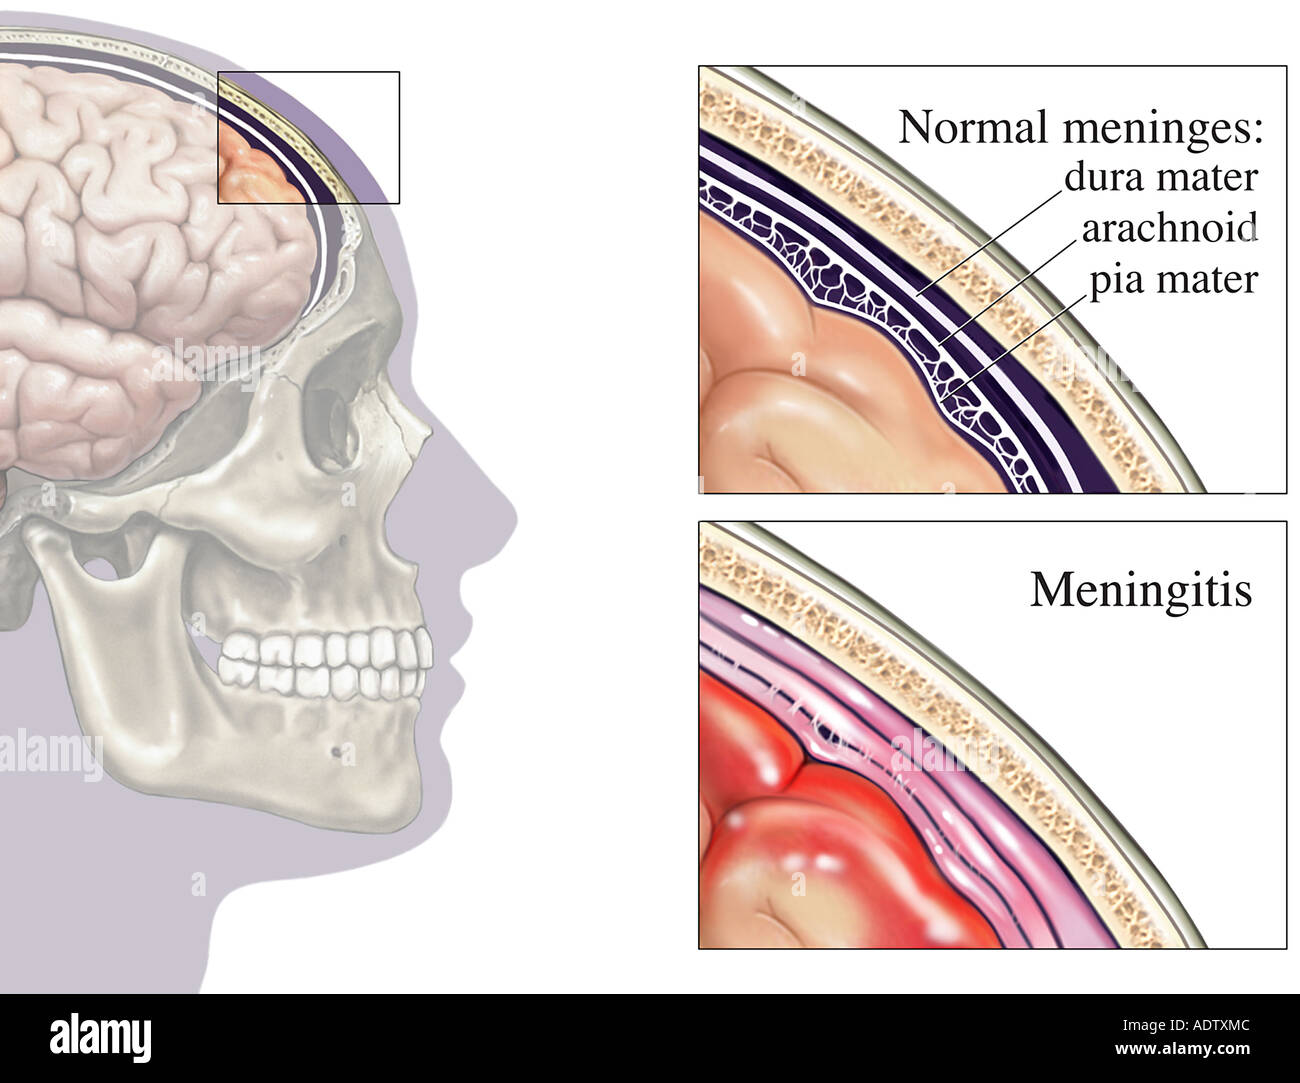 Bacterial Meningitis Brain Covering Infection Stock Photo: 7710667 ...